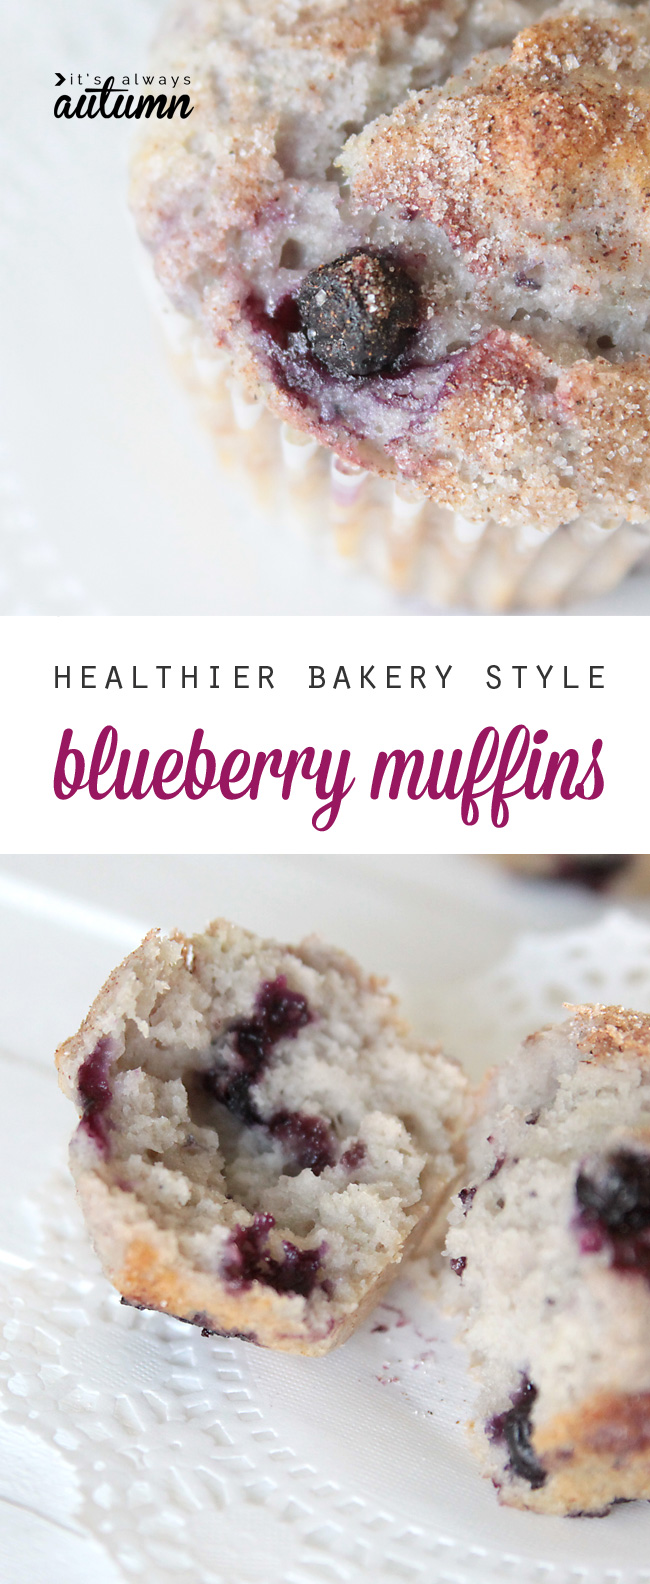 These bakery style blueberry muffins are sweet and tender with less fat and calories due to a secret ingredient in the recipe: greek yogurt!